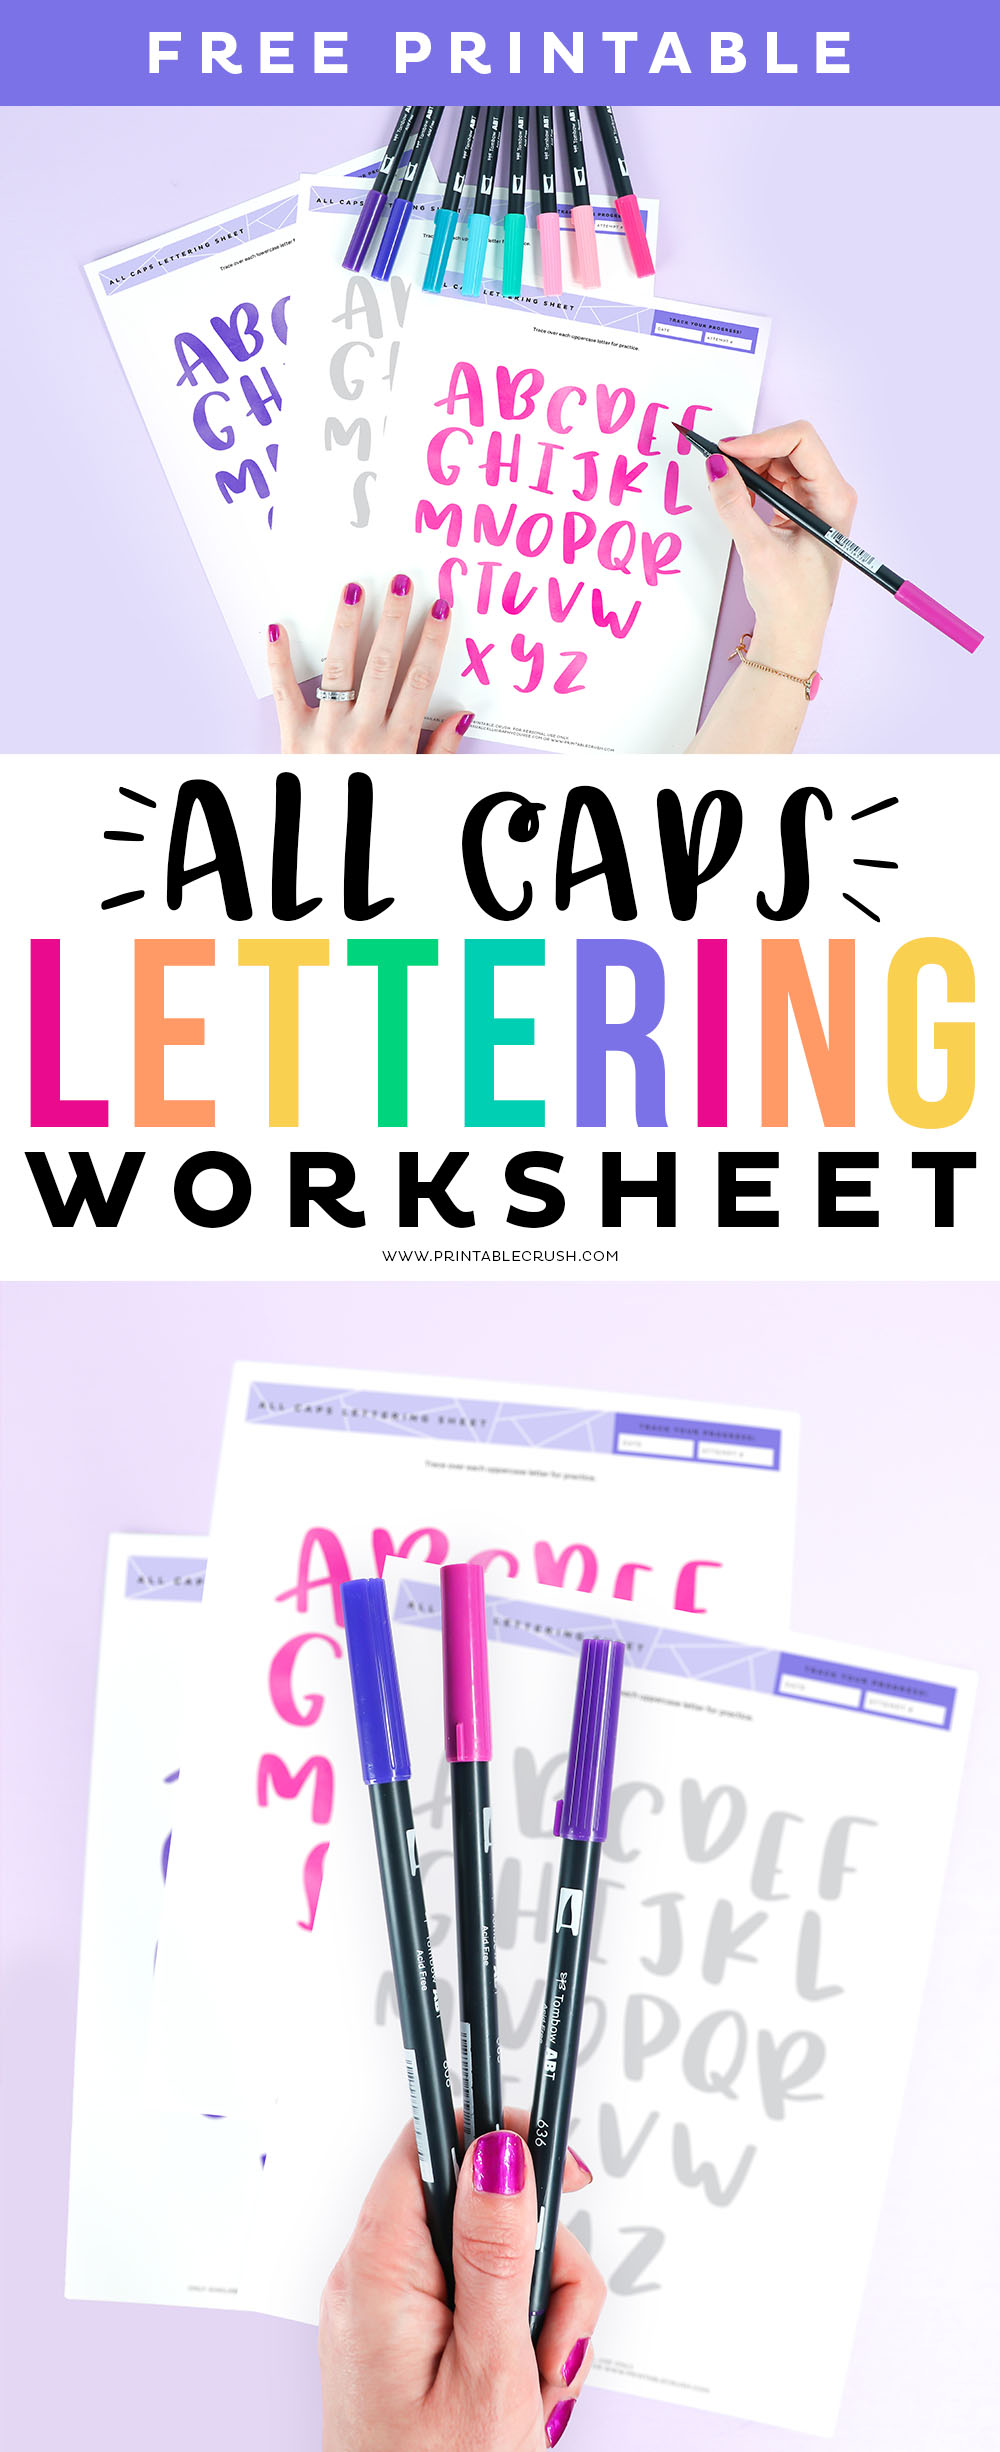 Brush lettering isn't just for cursive! Use this ALL CAPS Brush Lettering Practice Page to learn a new lettering technique. #brushlettering #allcapslettering #capitalletters #lettering #brushletter #practicelettering via @printablecrush